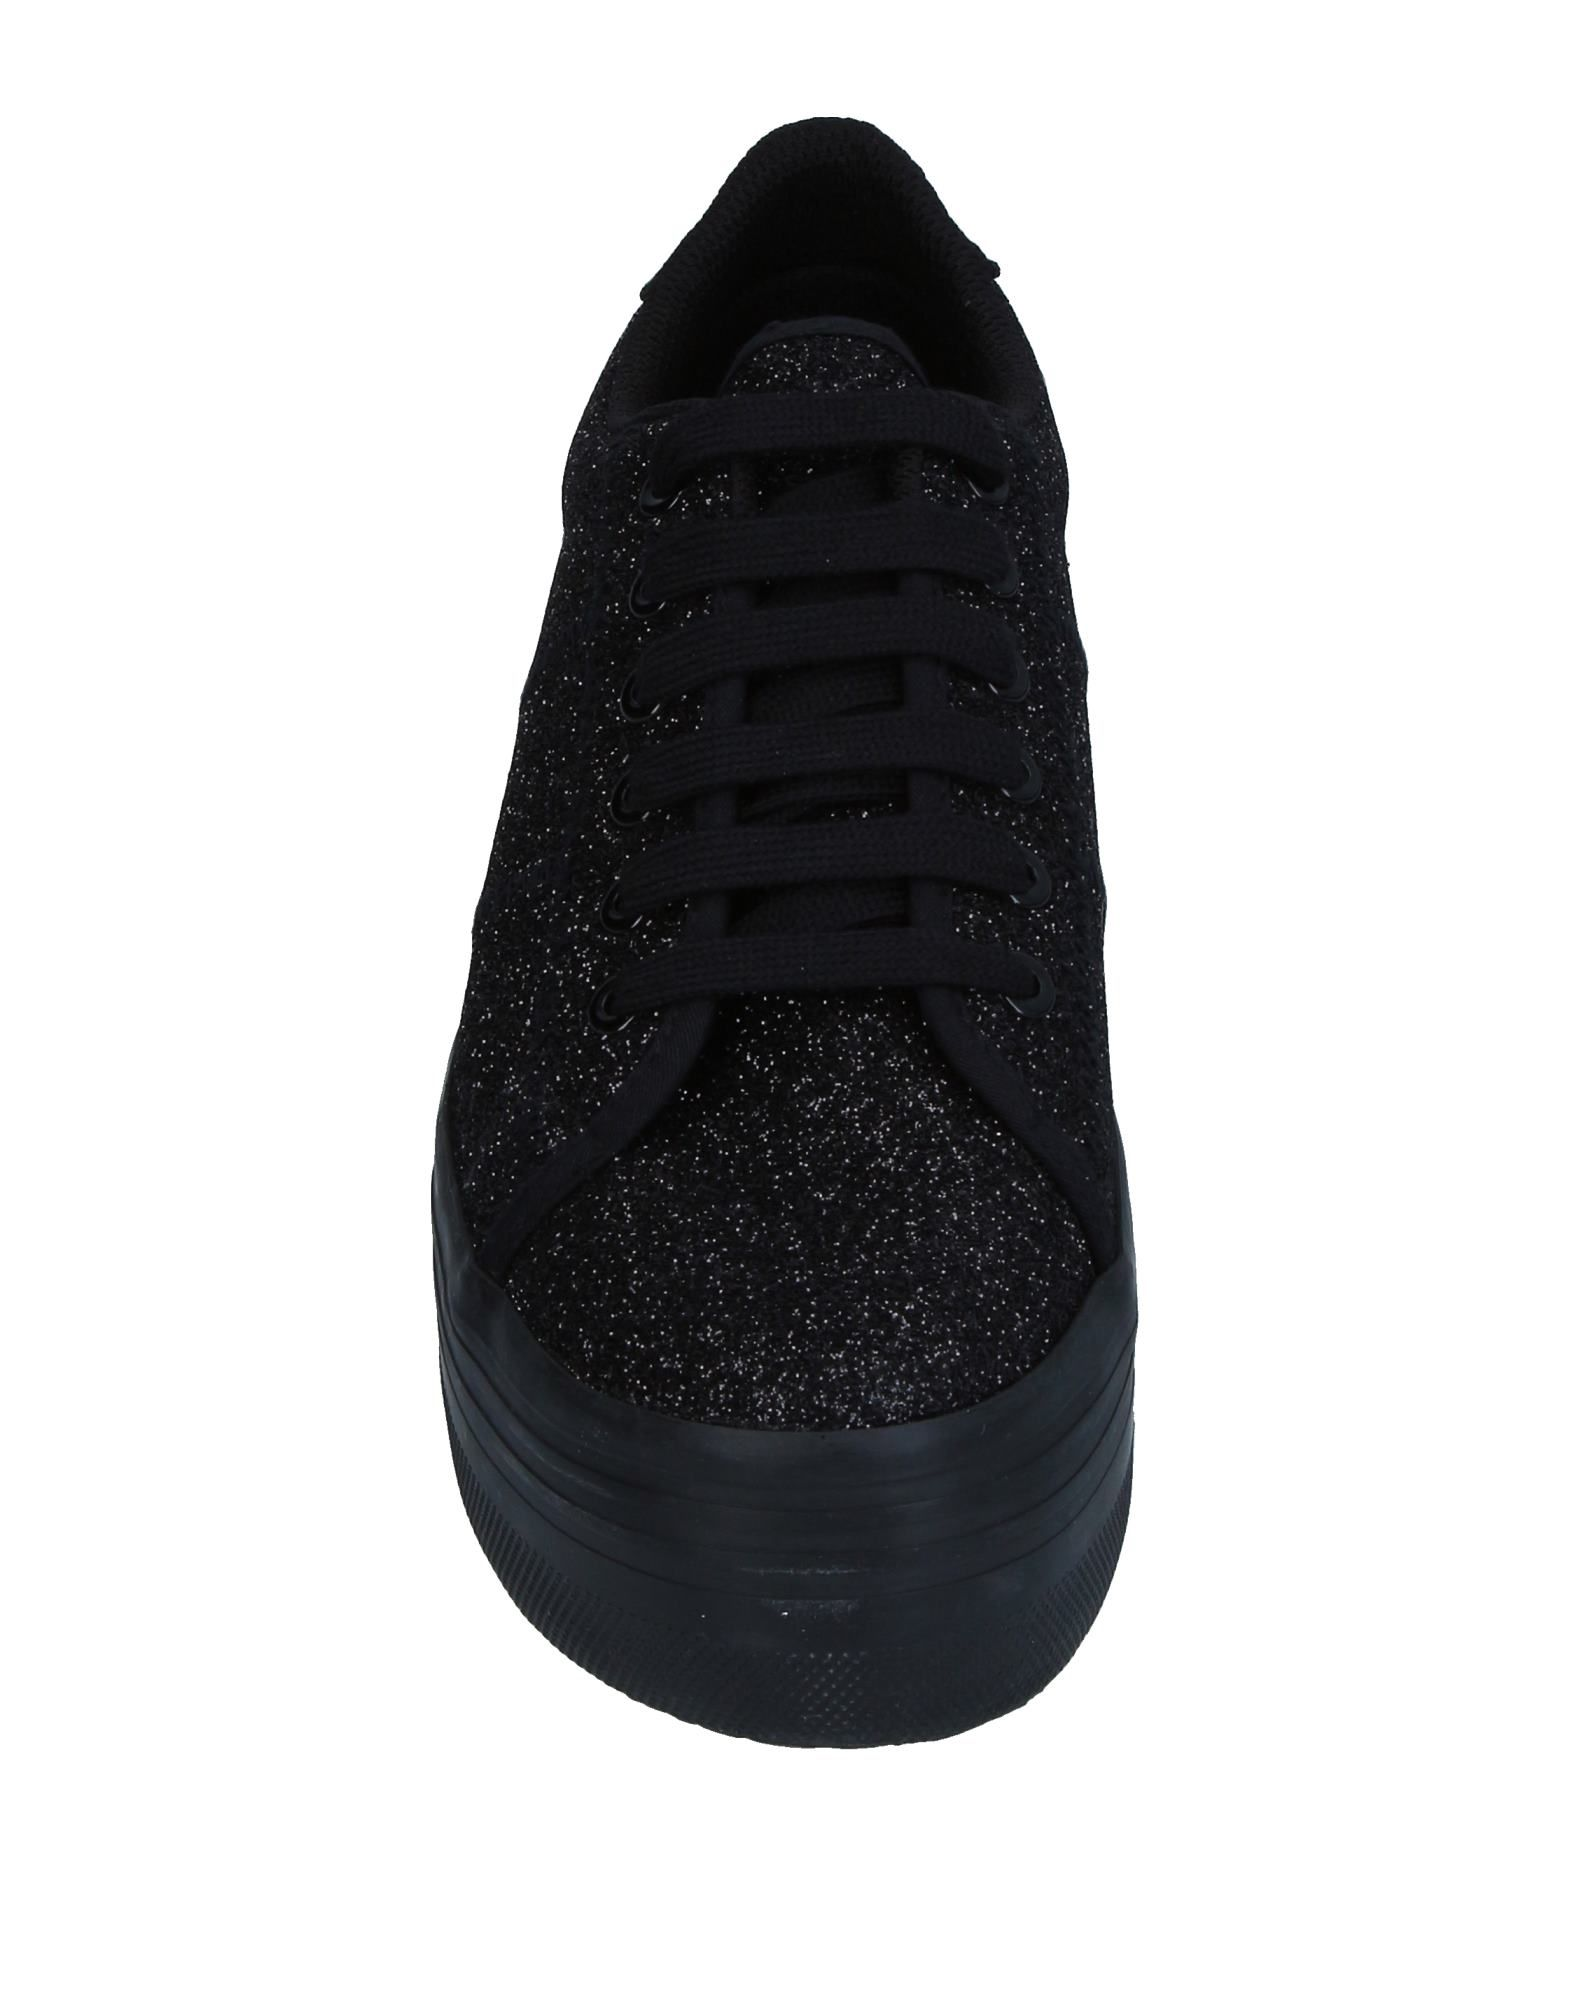 Jc Jc Jc Play By Jeffrey Campbell Sneakers Damen  11356333MT 5721d4